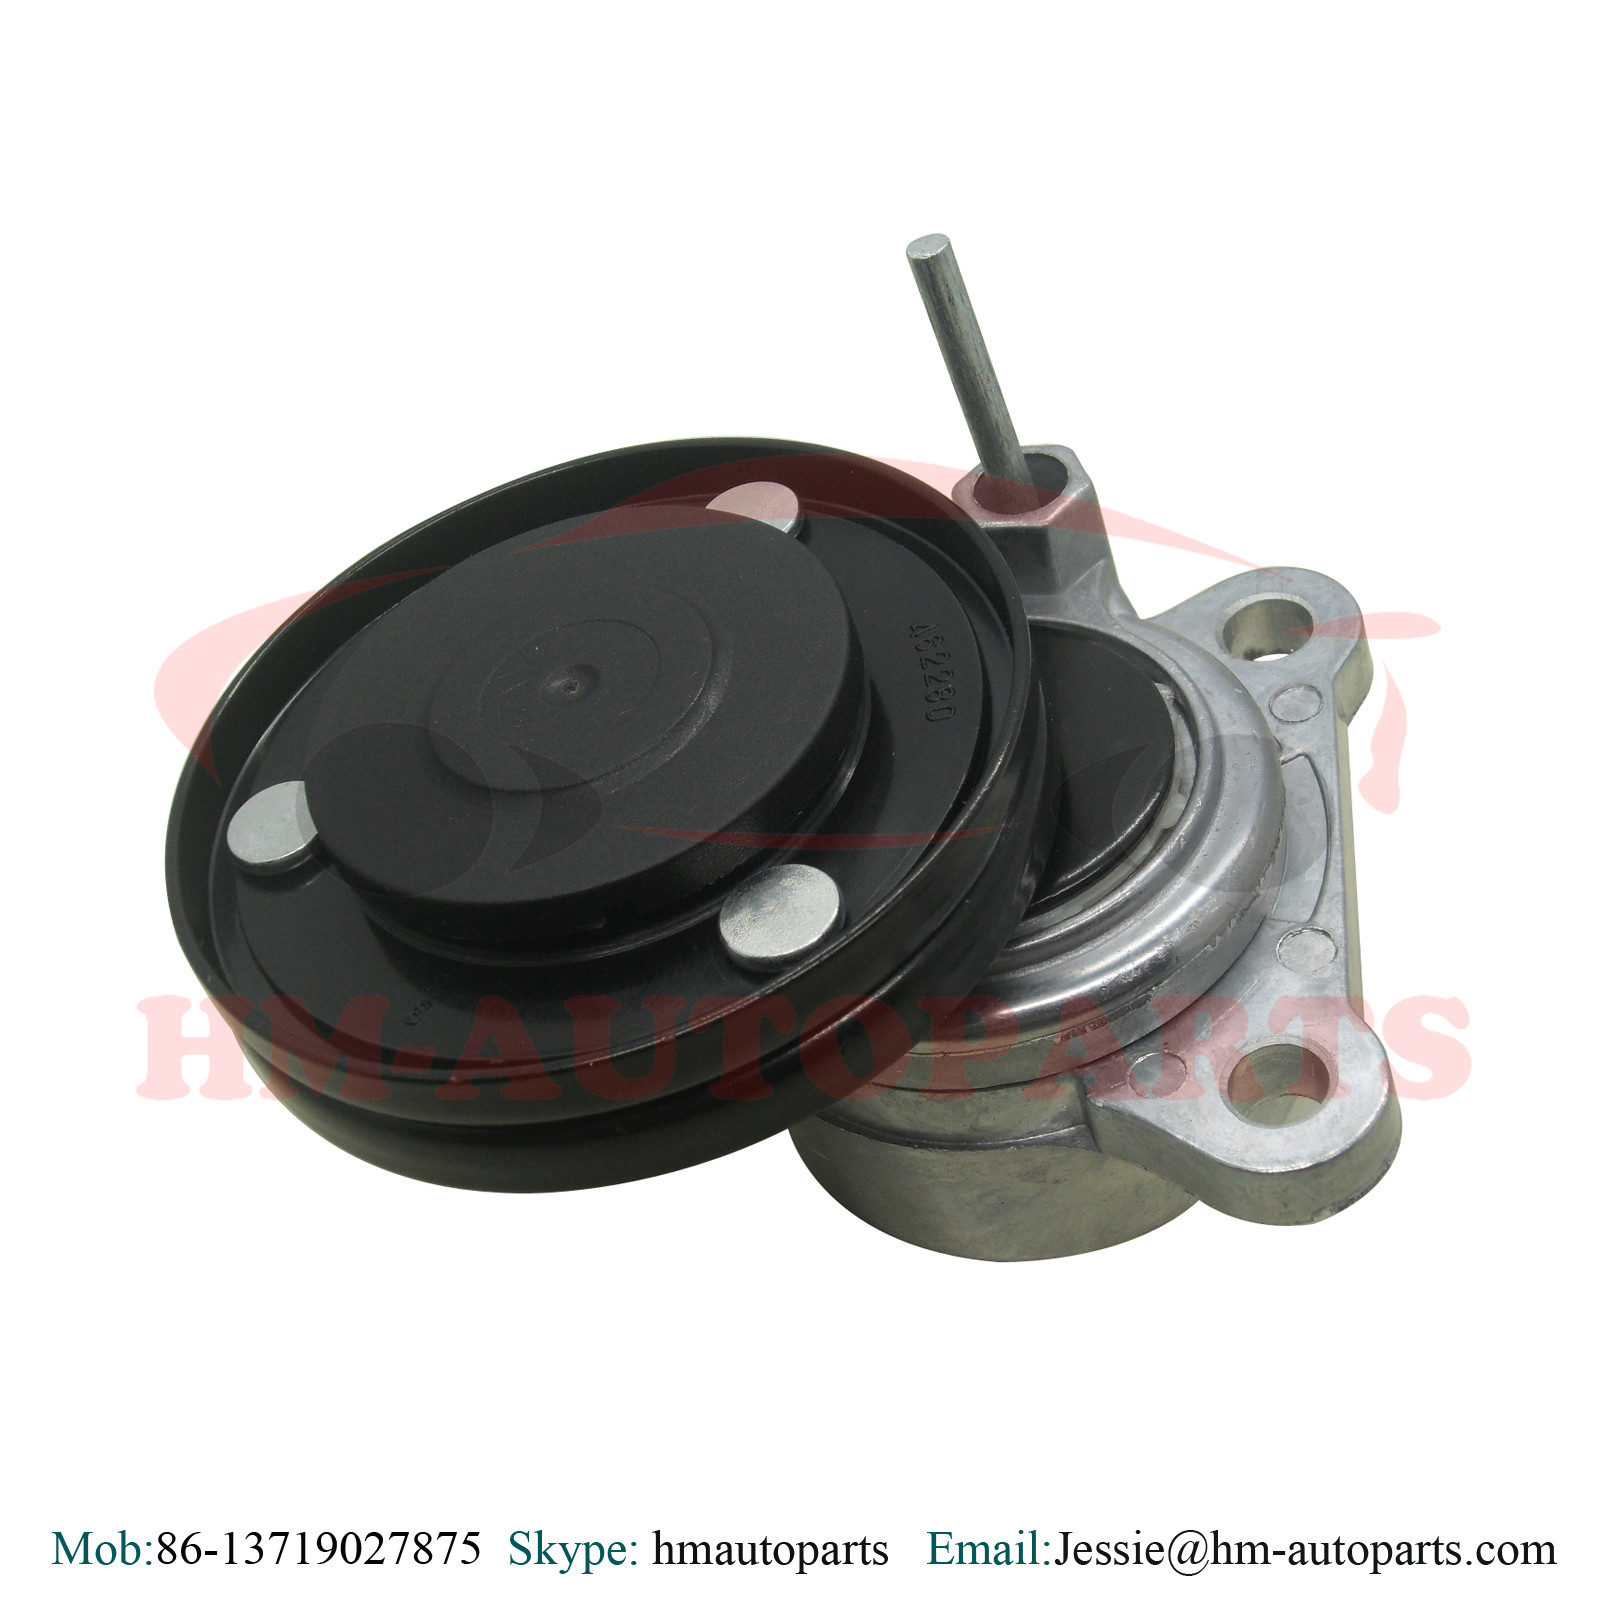 Timing Belt Tensioner Pqg100180 For Rover China Land Other Adjuster We Can Provide